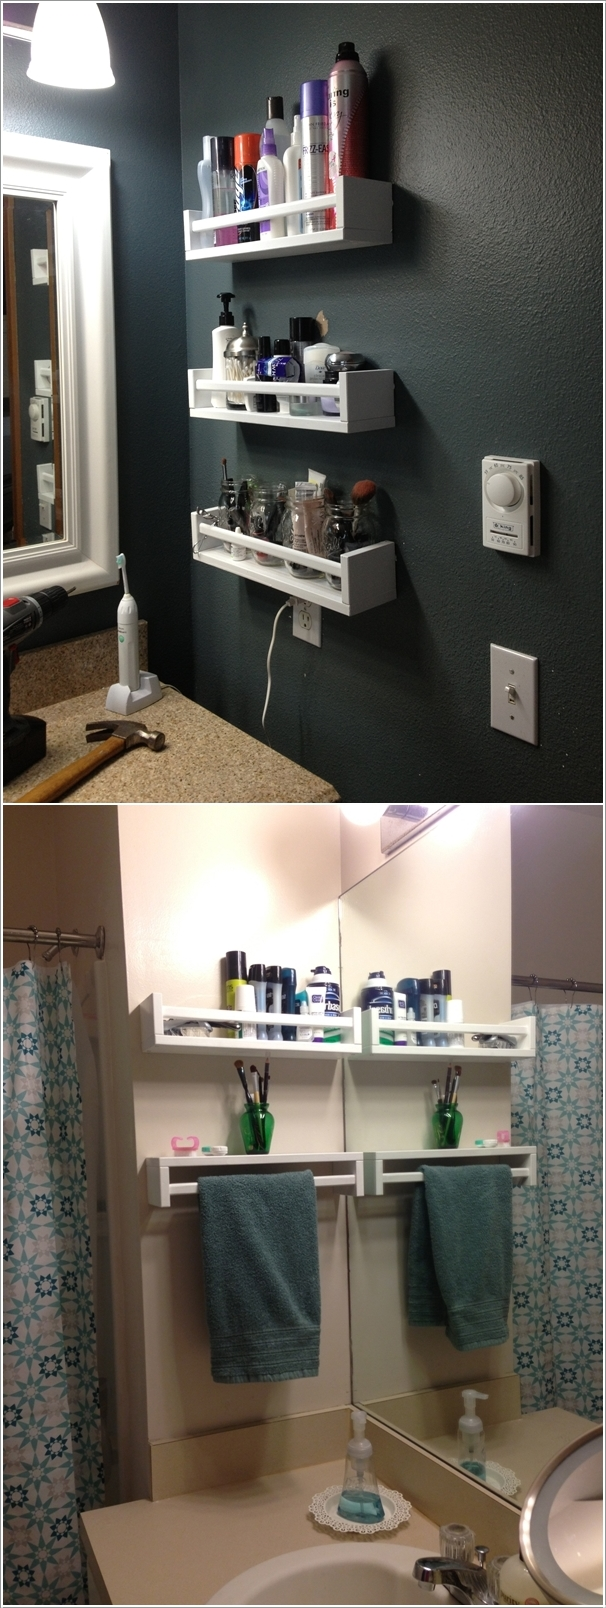 Create Wall Storage In Your Bathroom With Diy Shelves